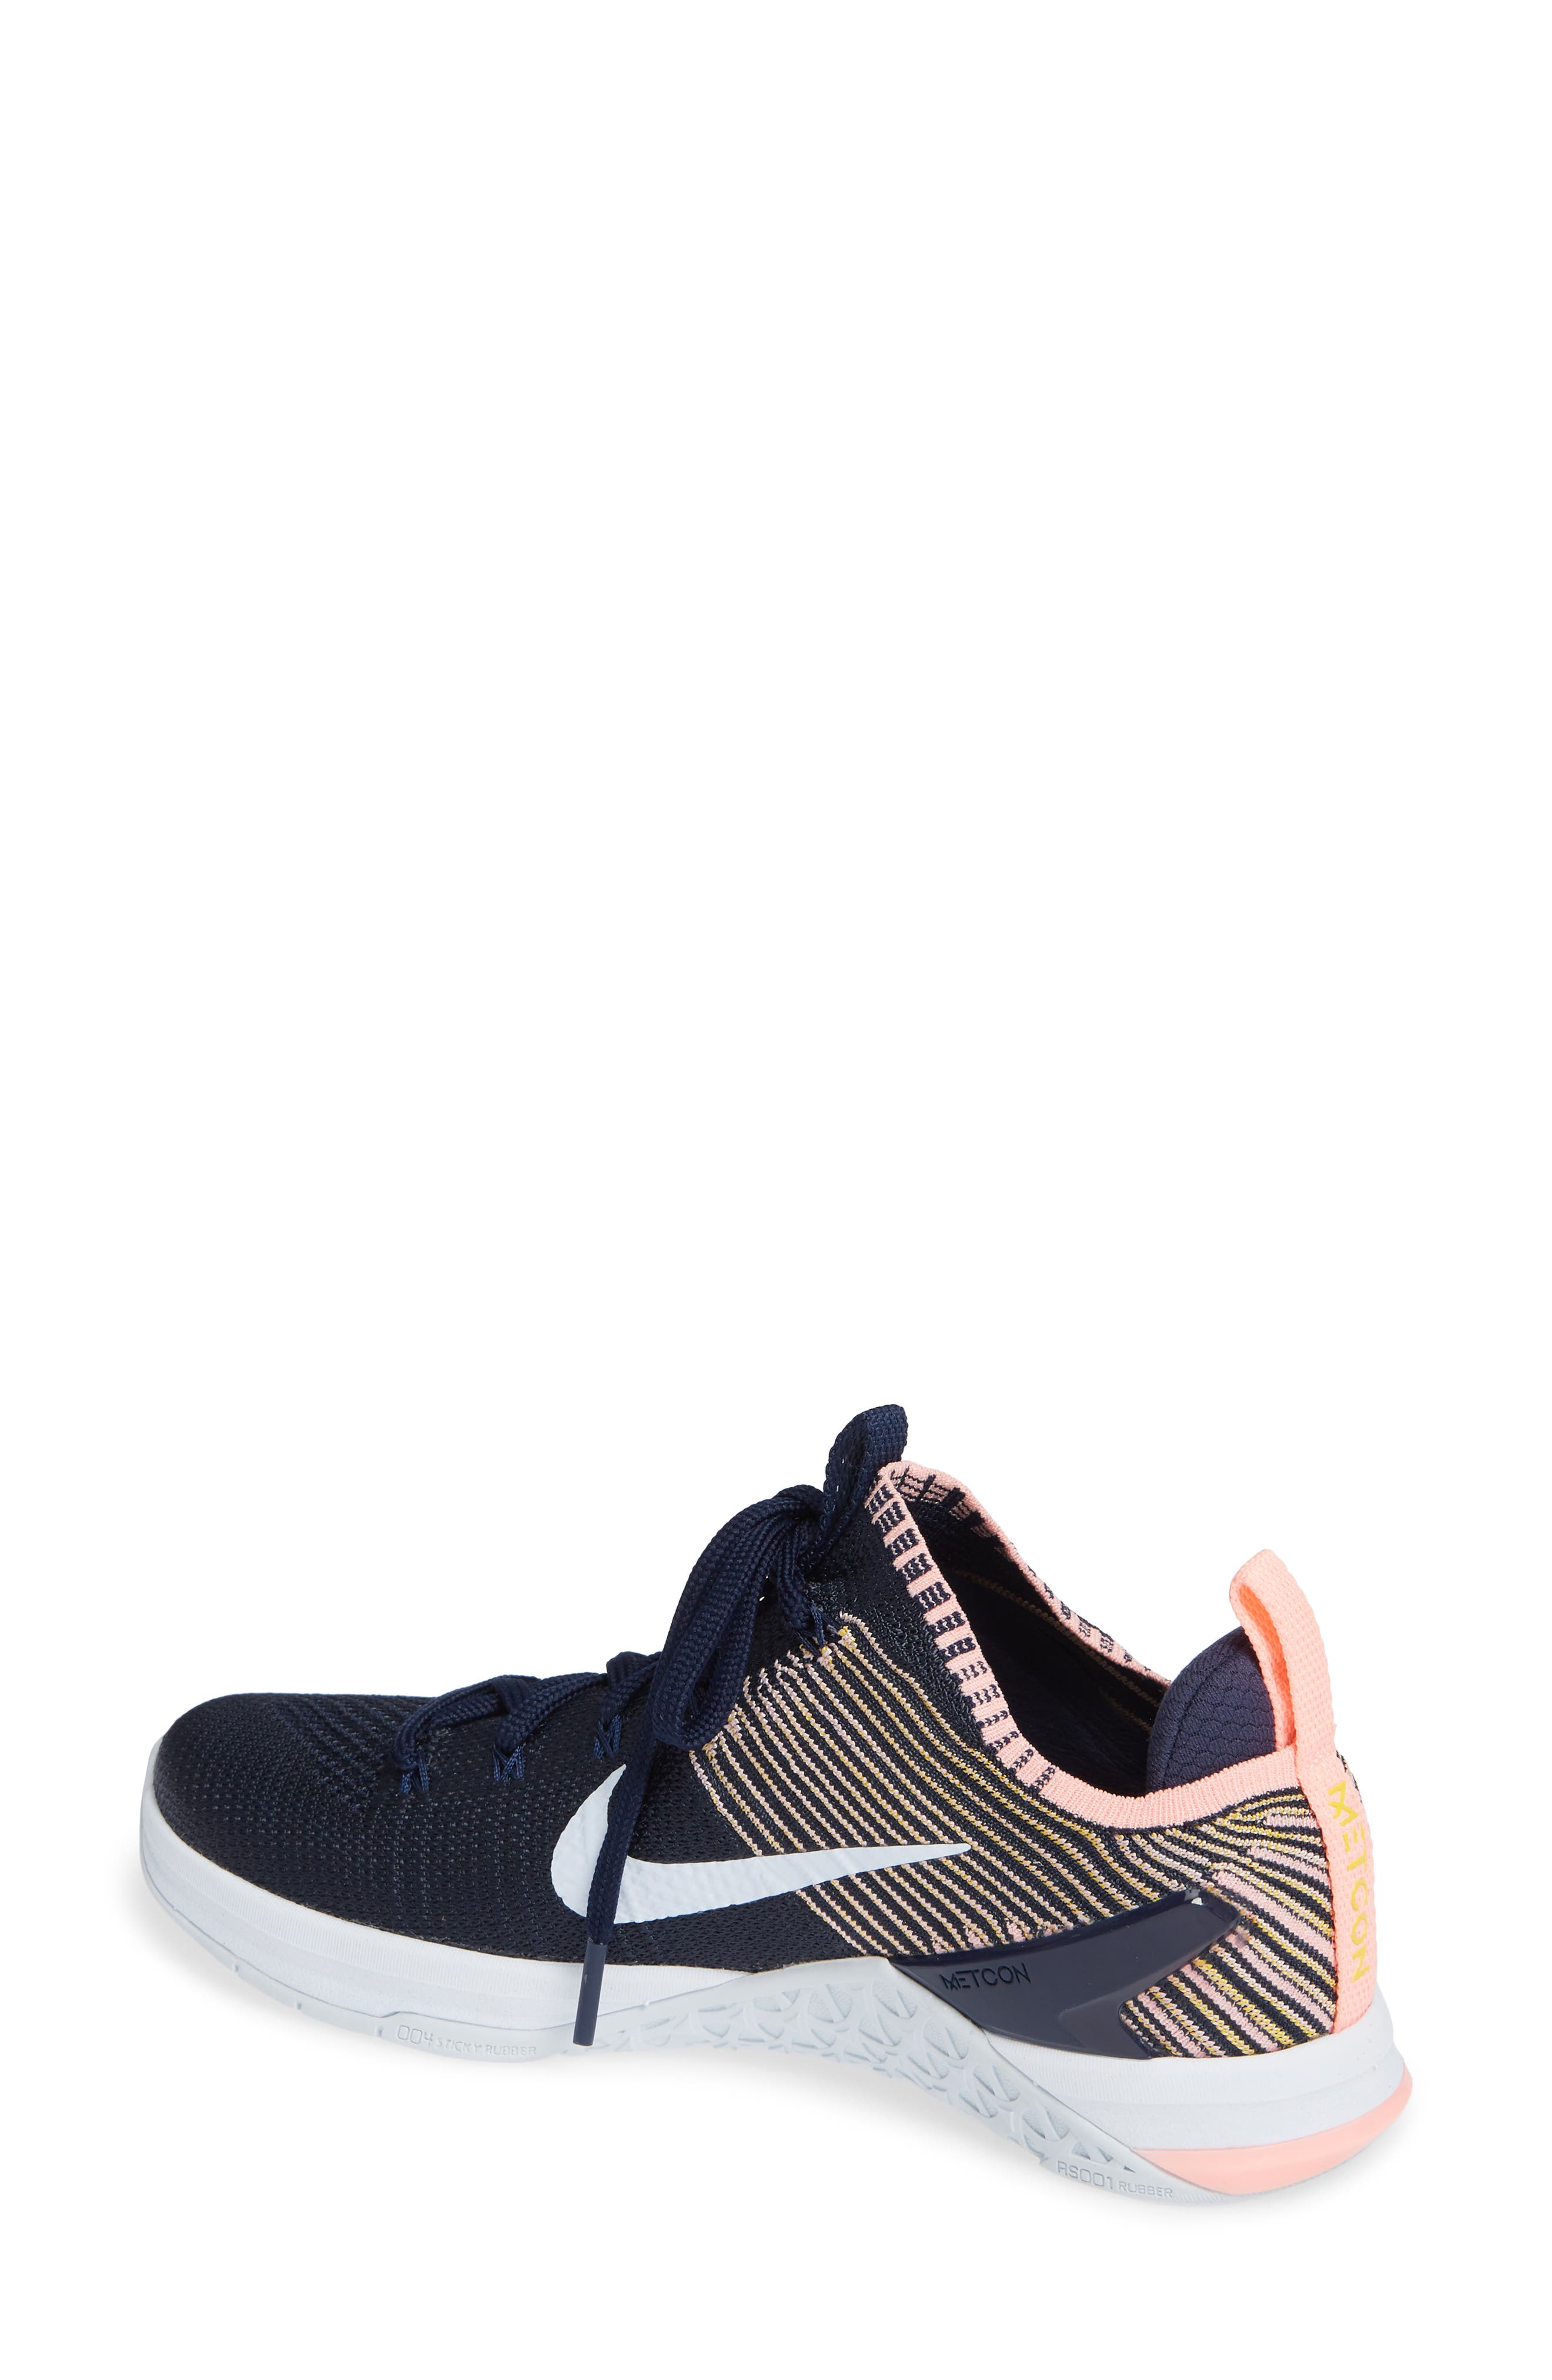 Metcon DSX Flyknit 2 Training Shoe,                             Alternate thumbnail 14, color,